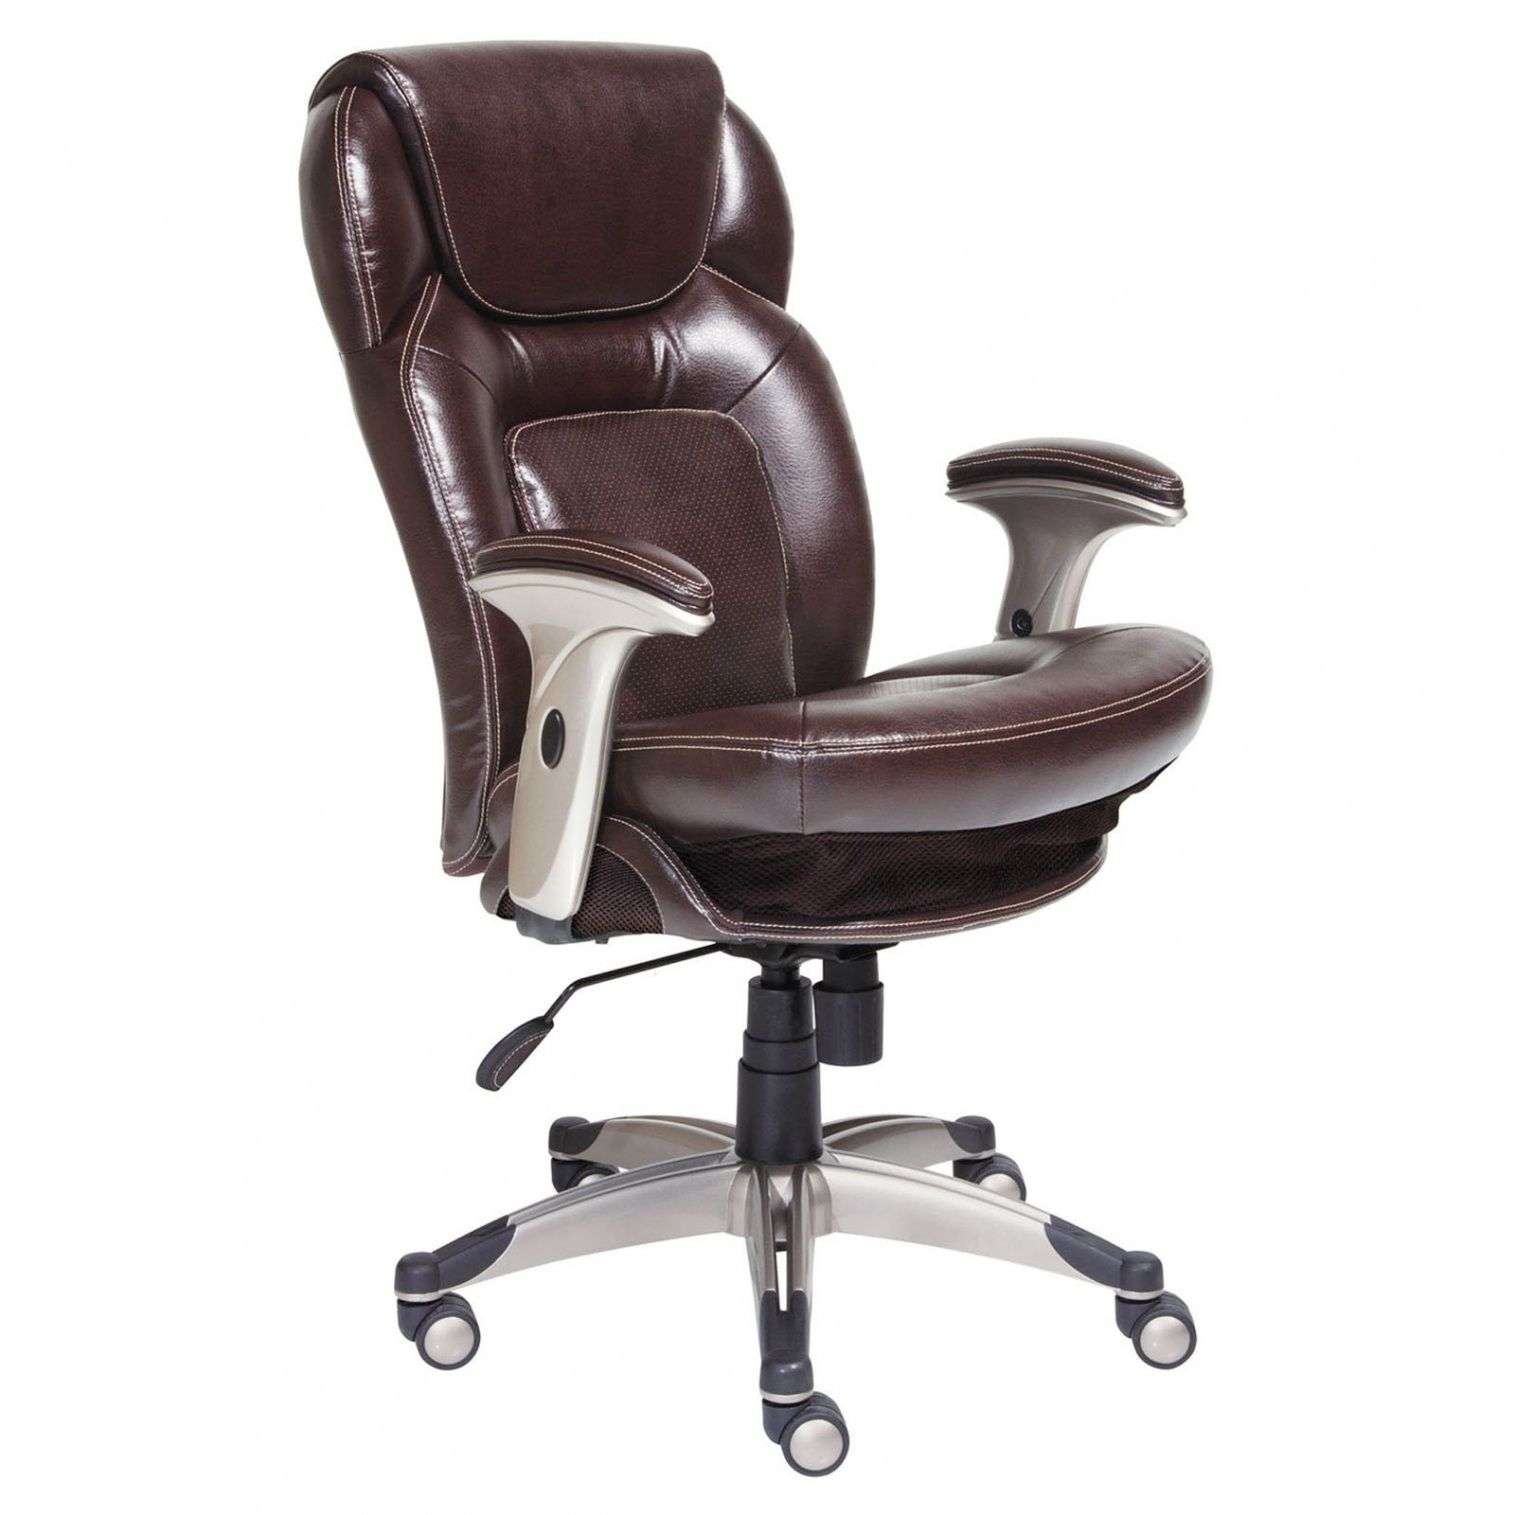 microfiber office chair big comfy high back furniture for home check more at http